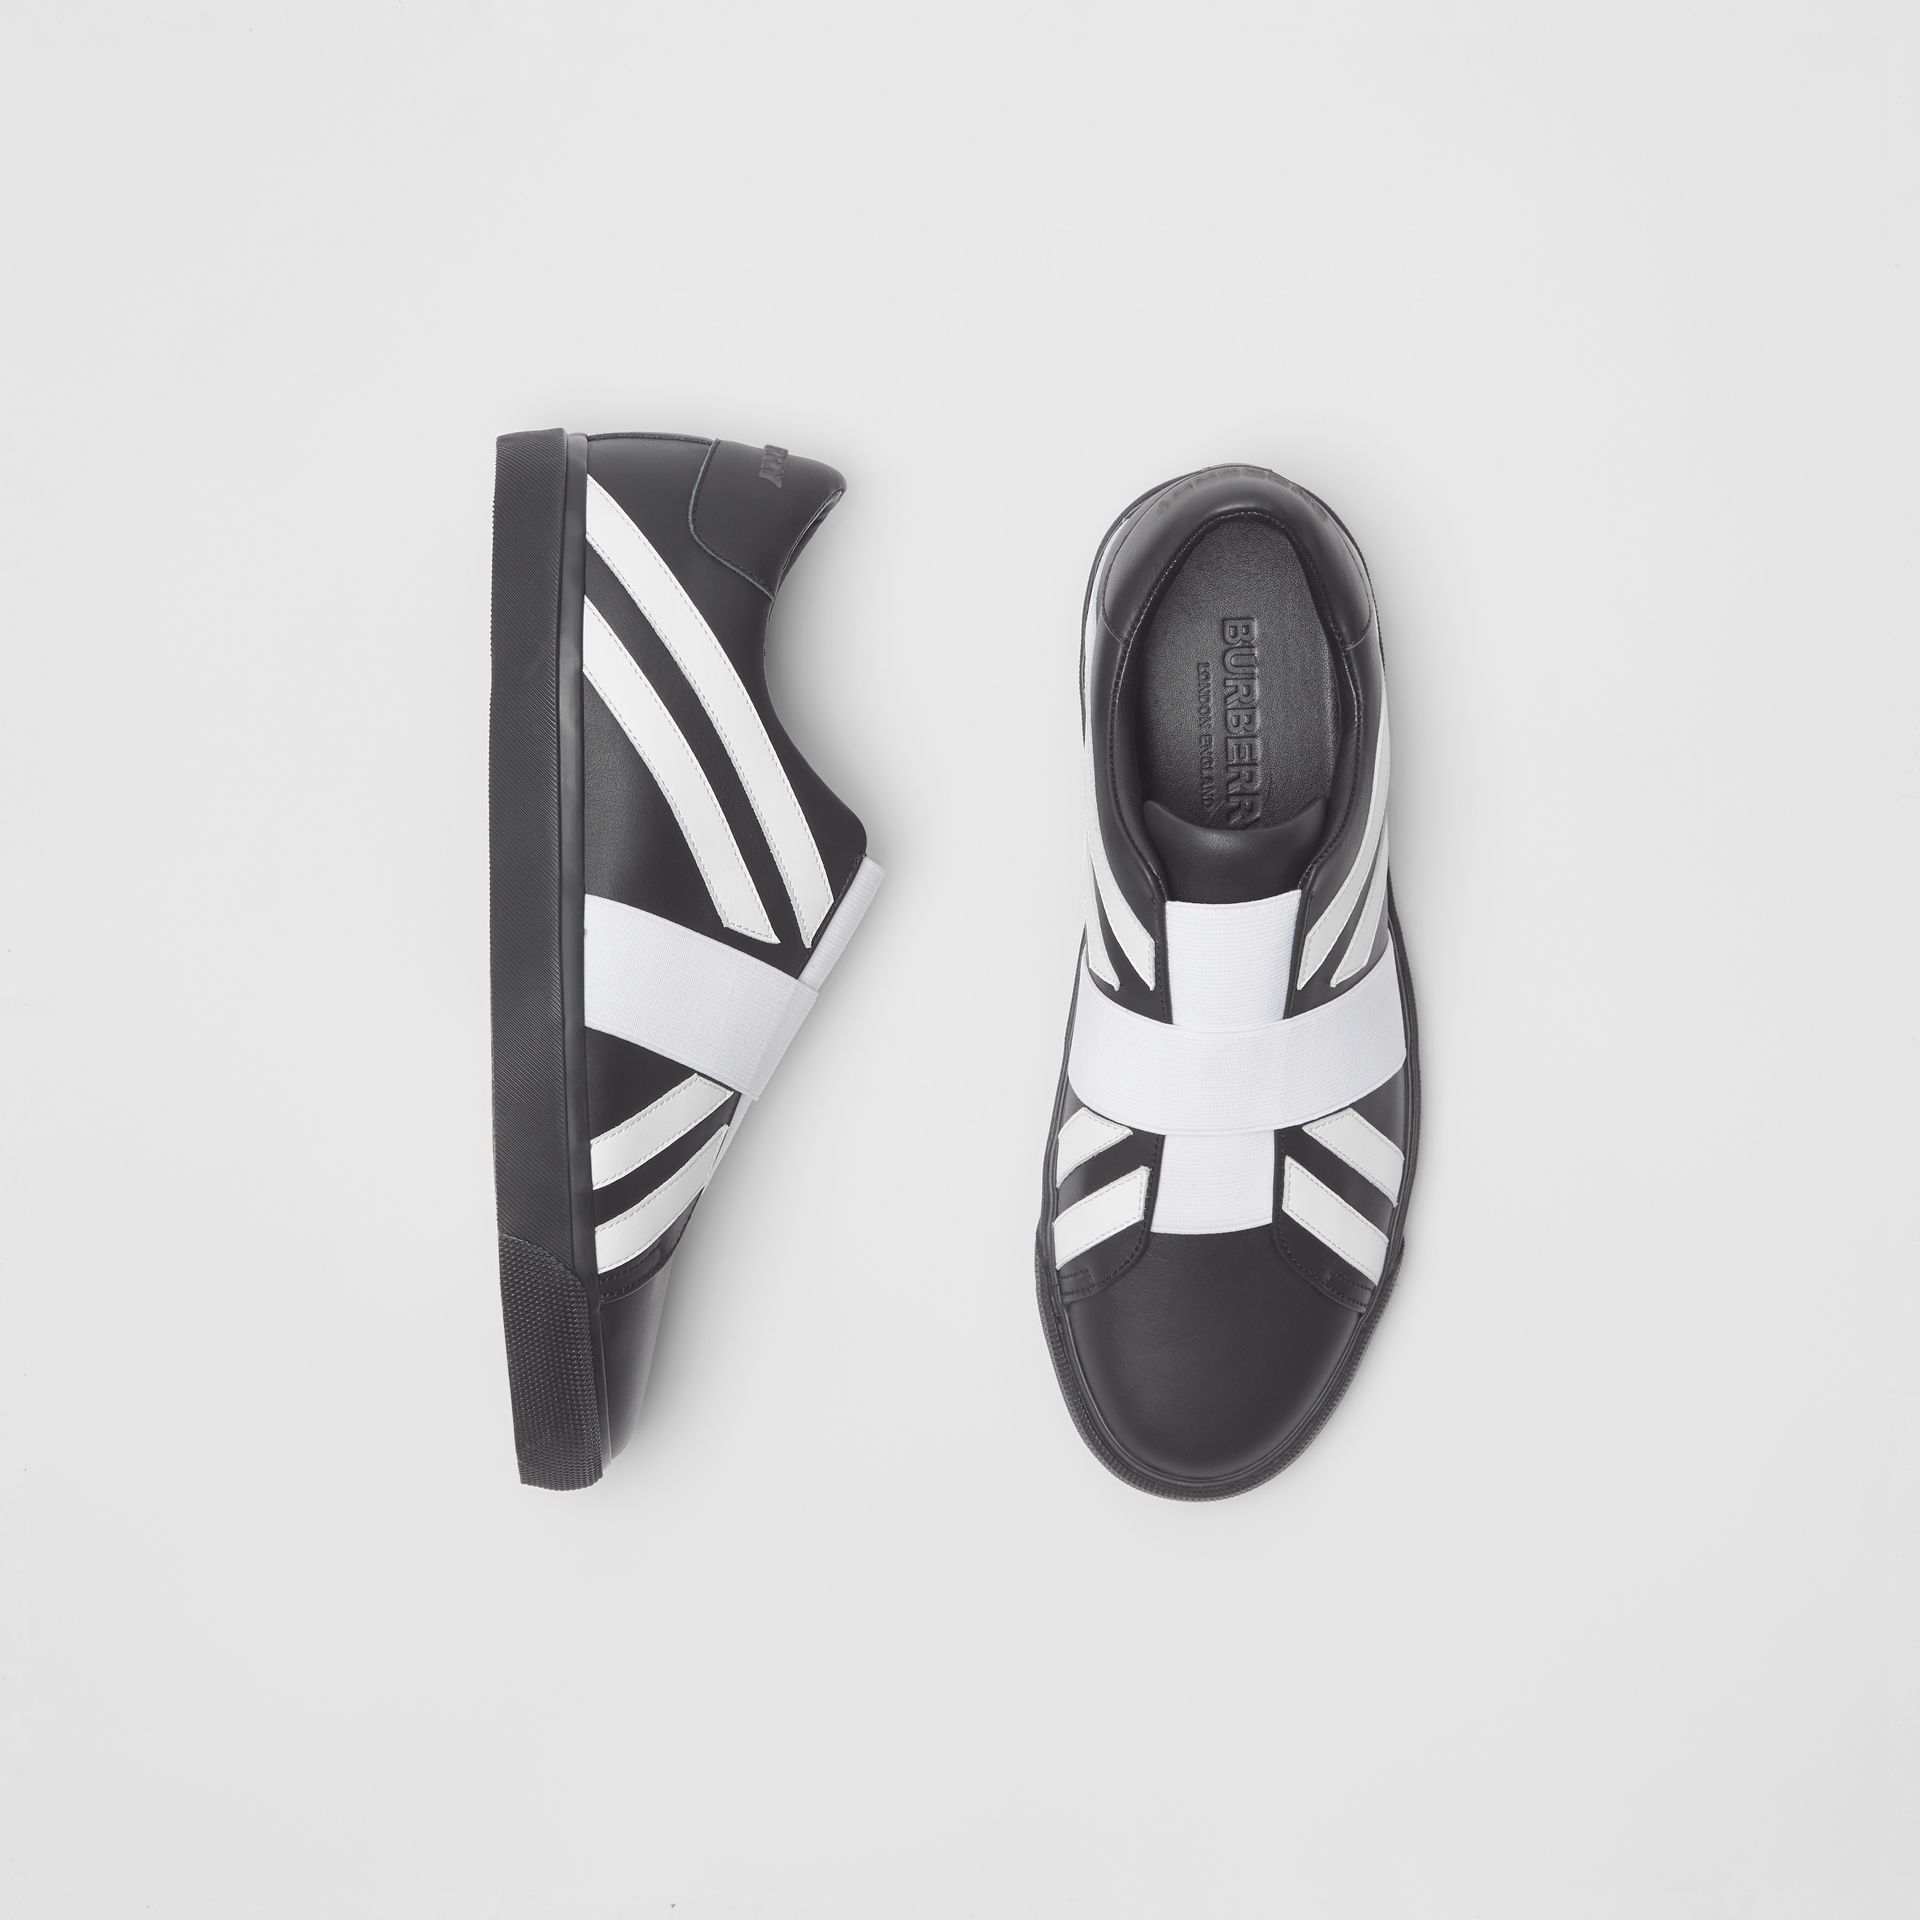 Sneakers sans lacets à motif Union Jack (Noir) - Homme | Burberry - photo de la galerie 0